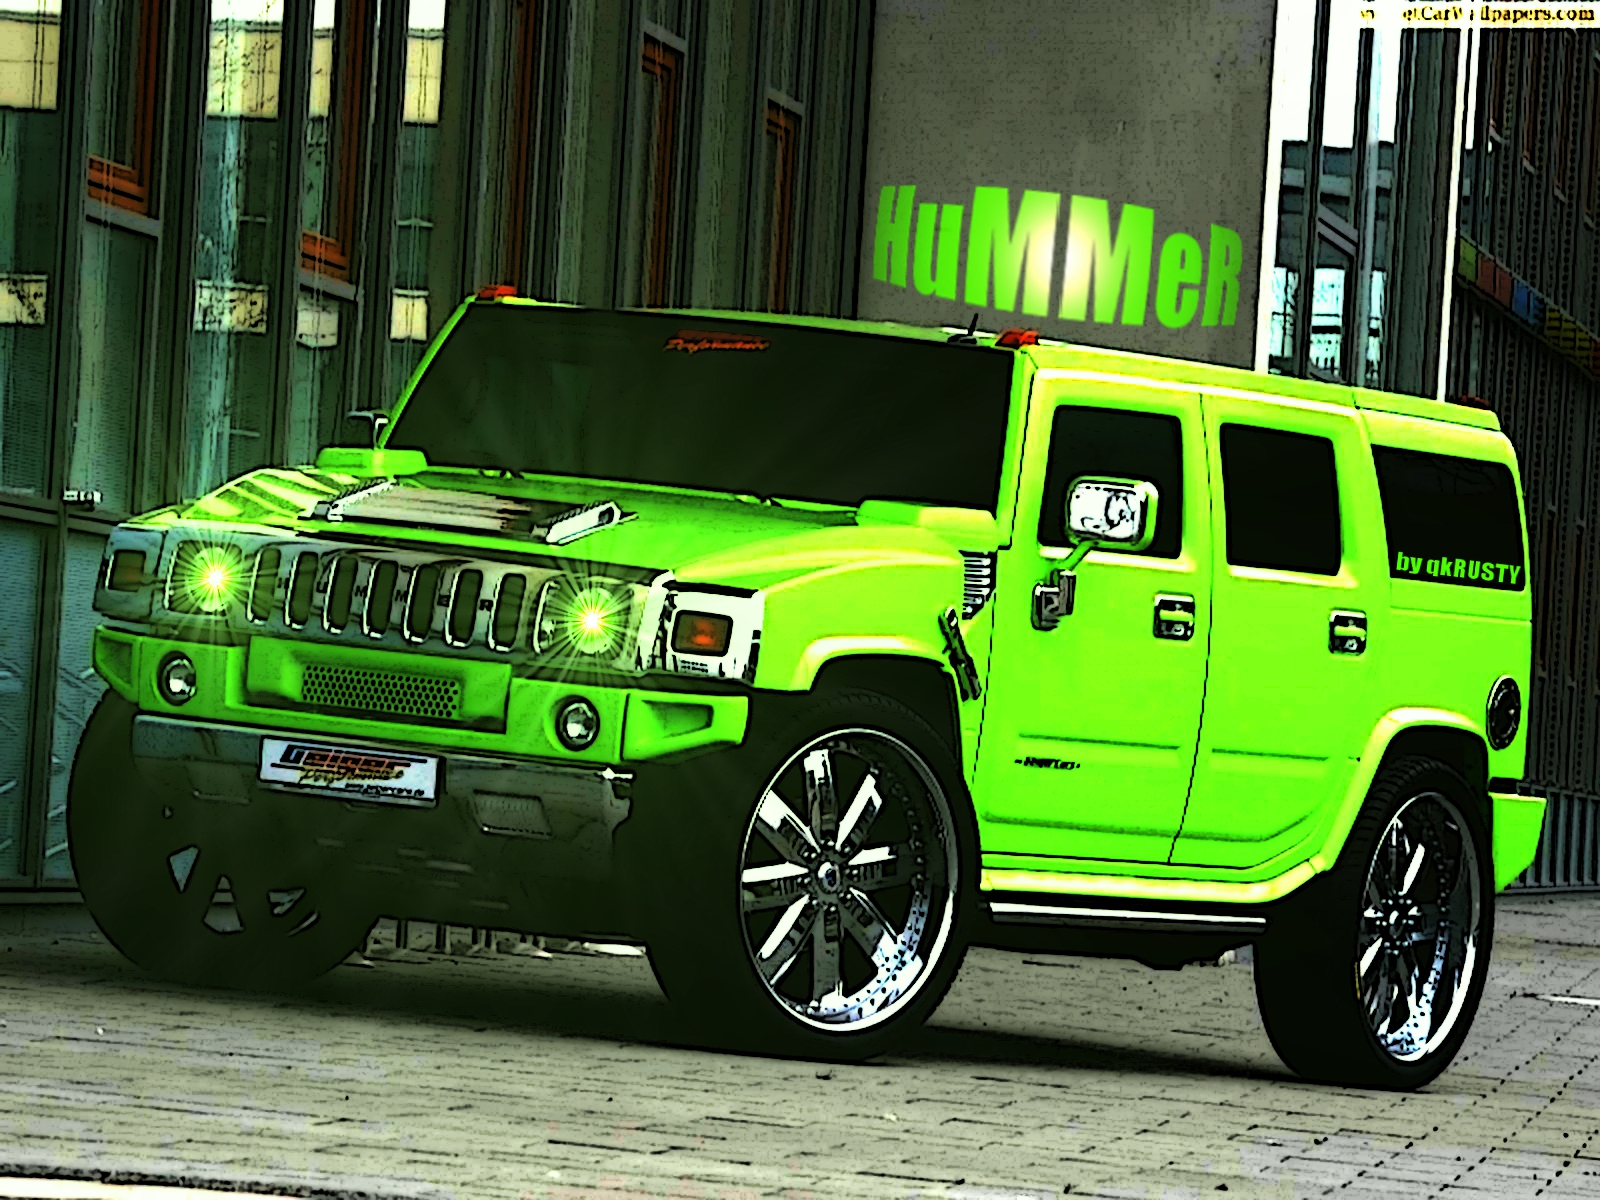 Hummer H2 2013 Wallpaper Free For PC